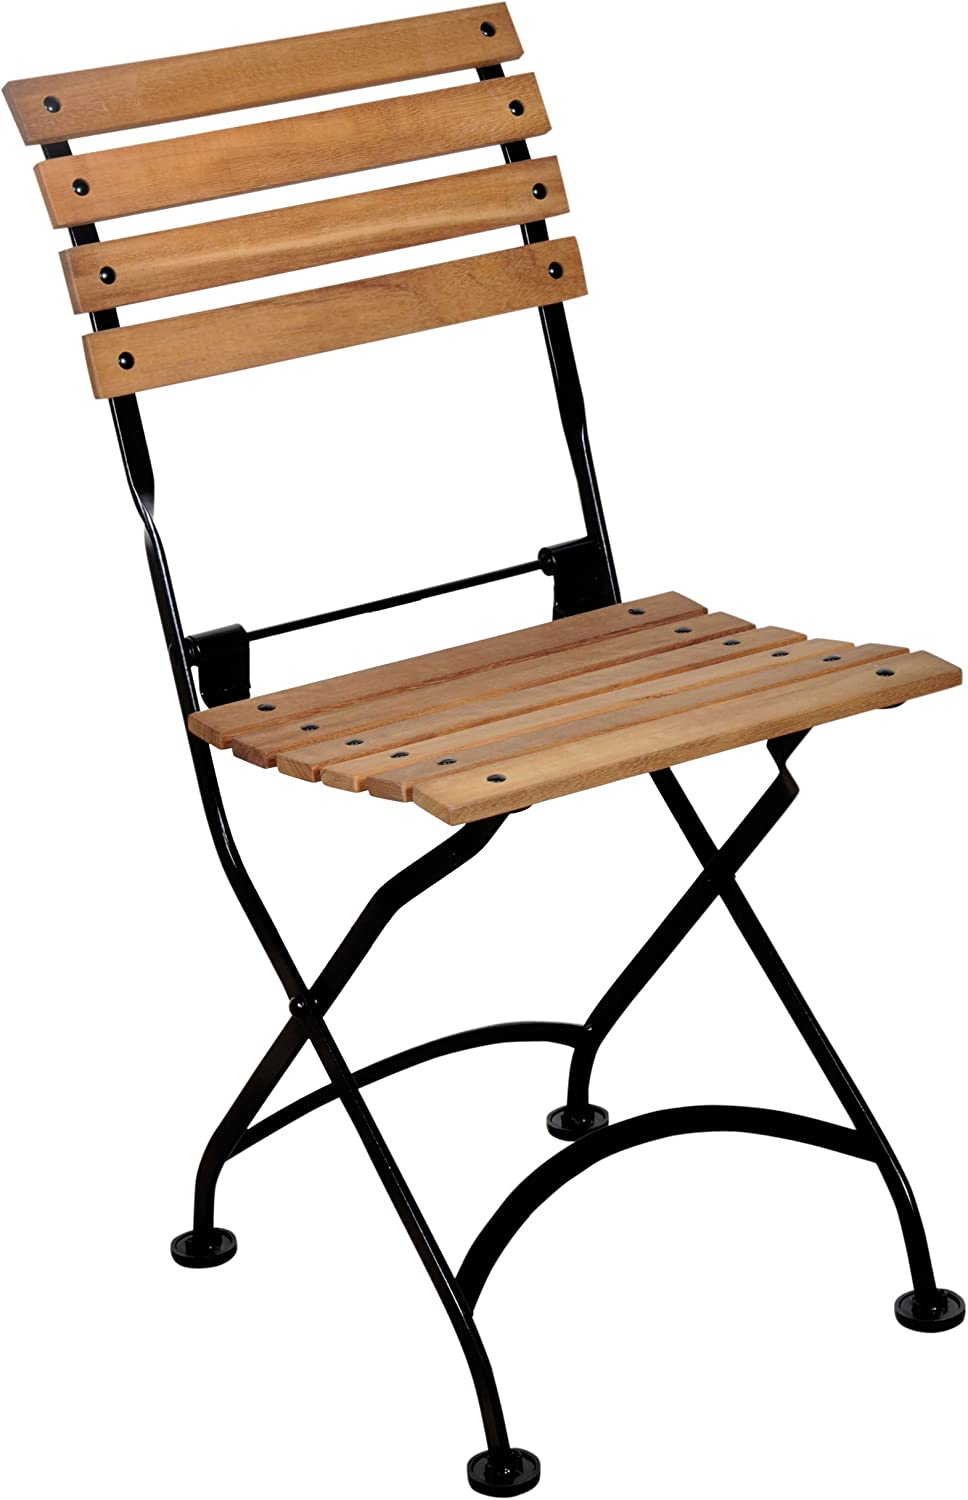 Mobel Designhaus French Caf Bistro Folding Side Chair, Jet Black Frame, African Teak Wood Slats Pack of 2